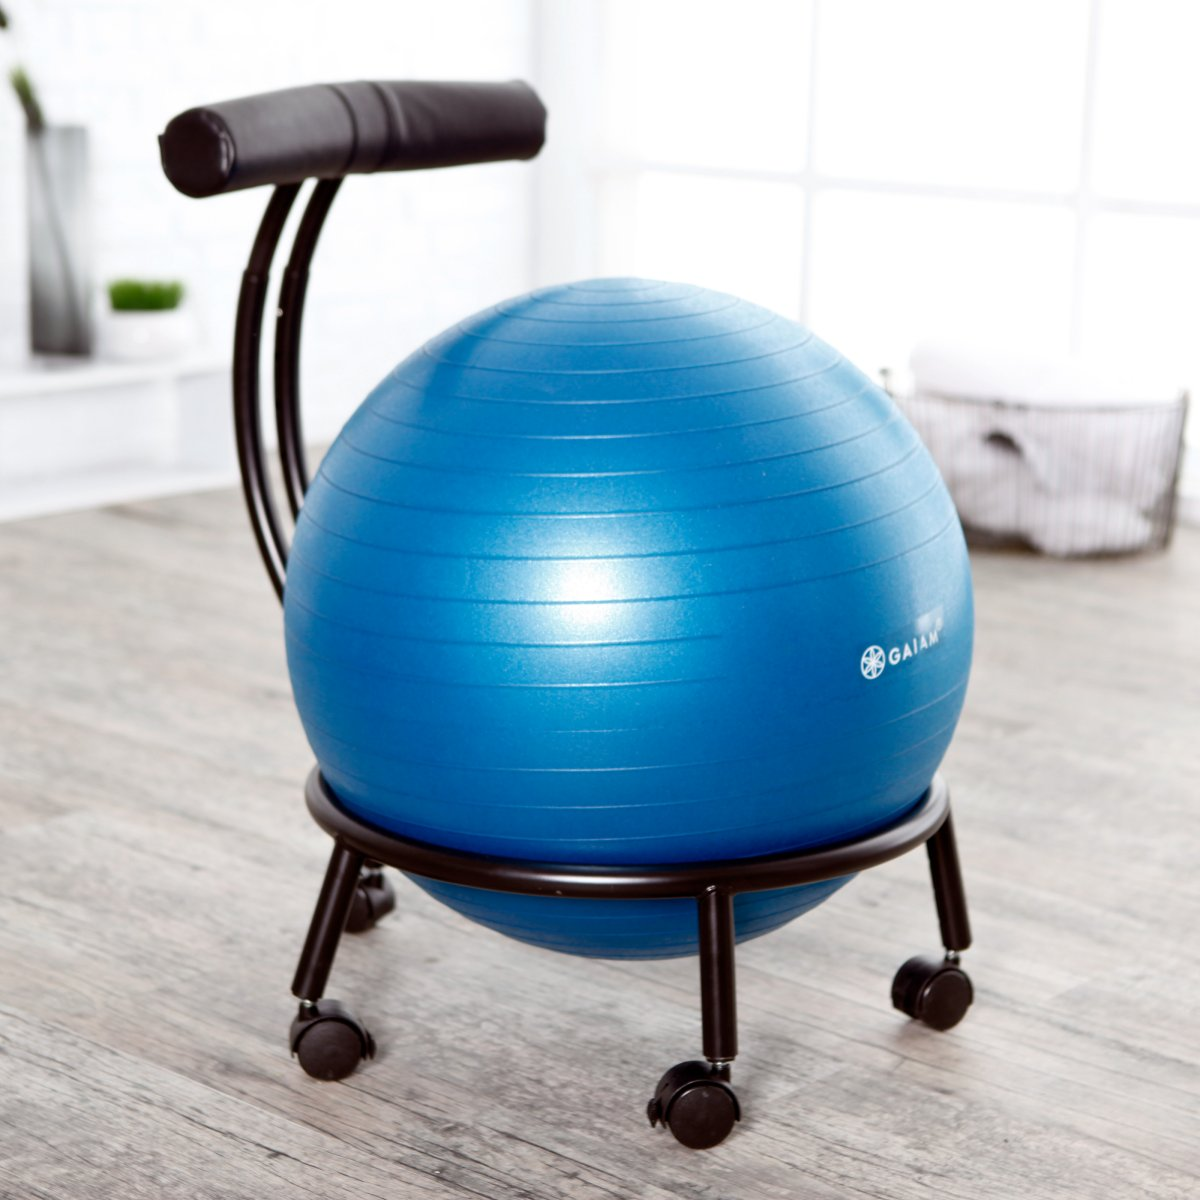 office size depot inc yoga chairs chair stability productive ball in balance furniture ergonomic for stay medicine longer fitness best benefits brand